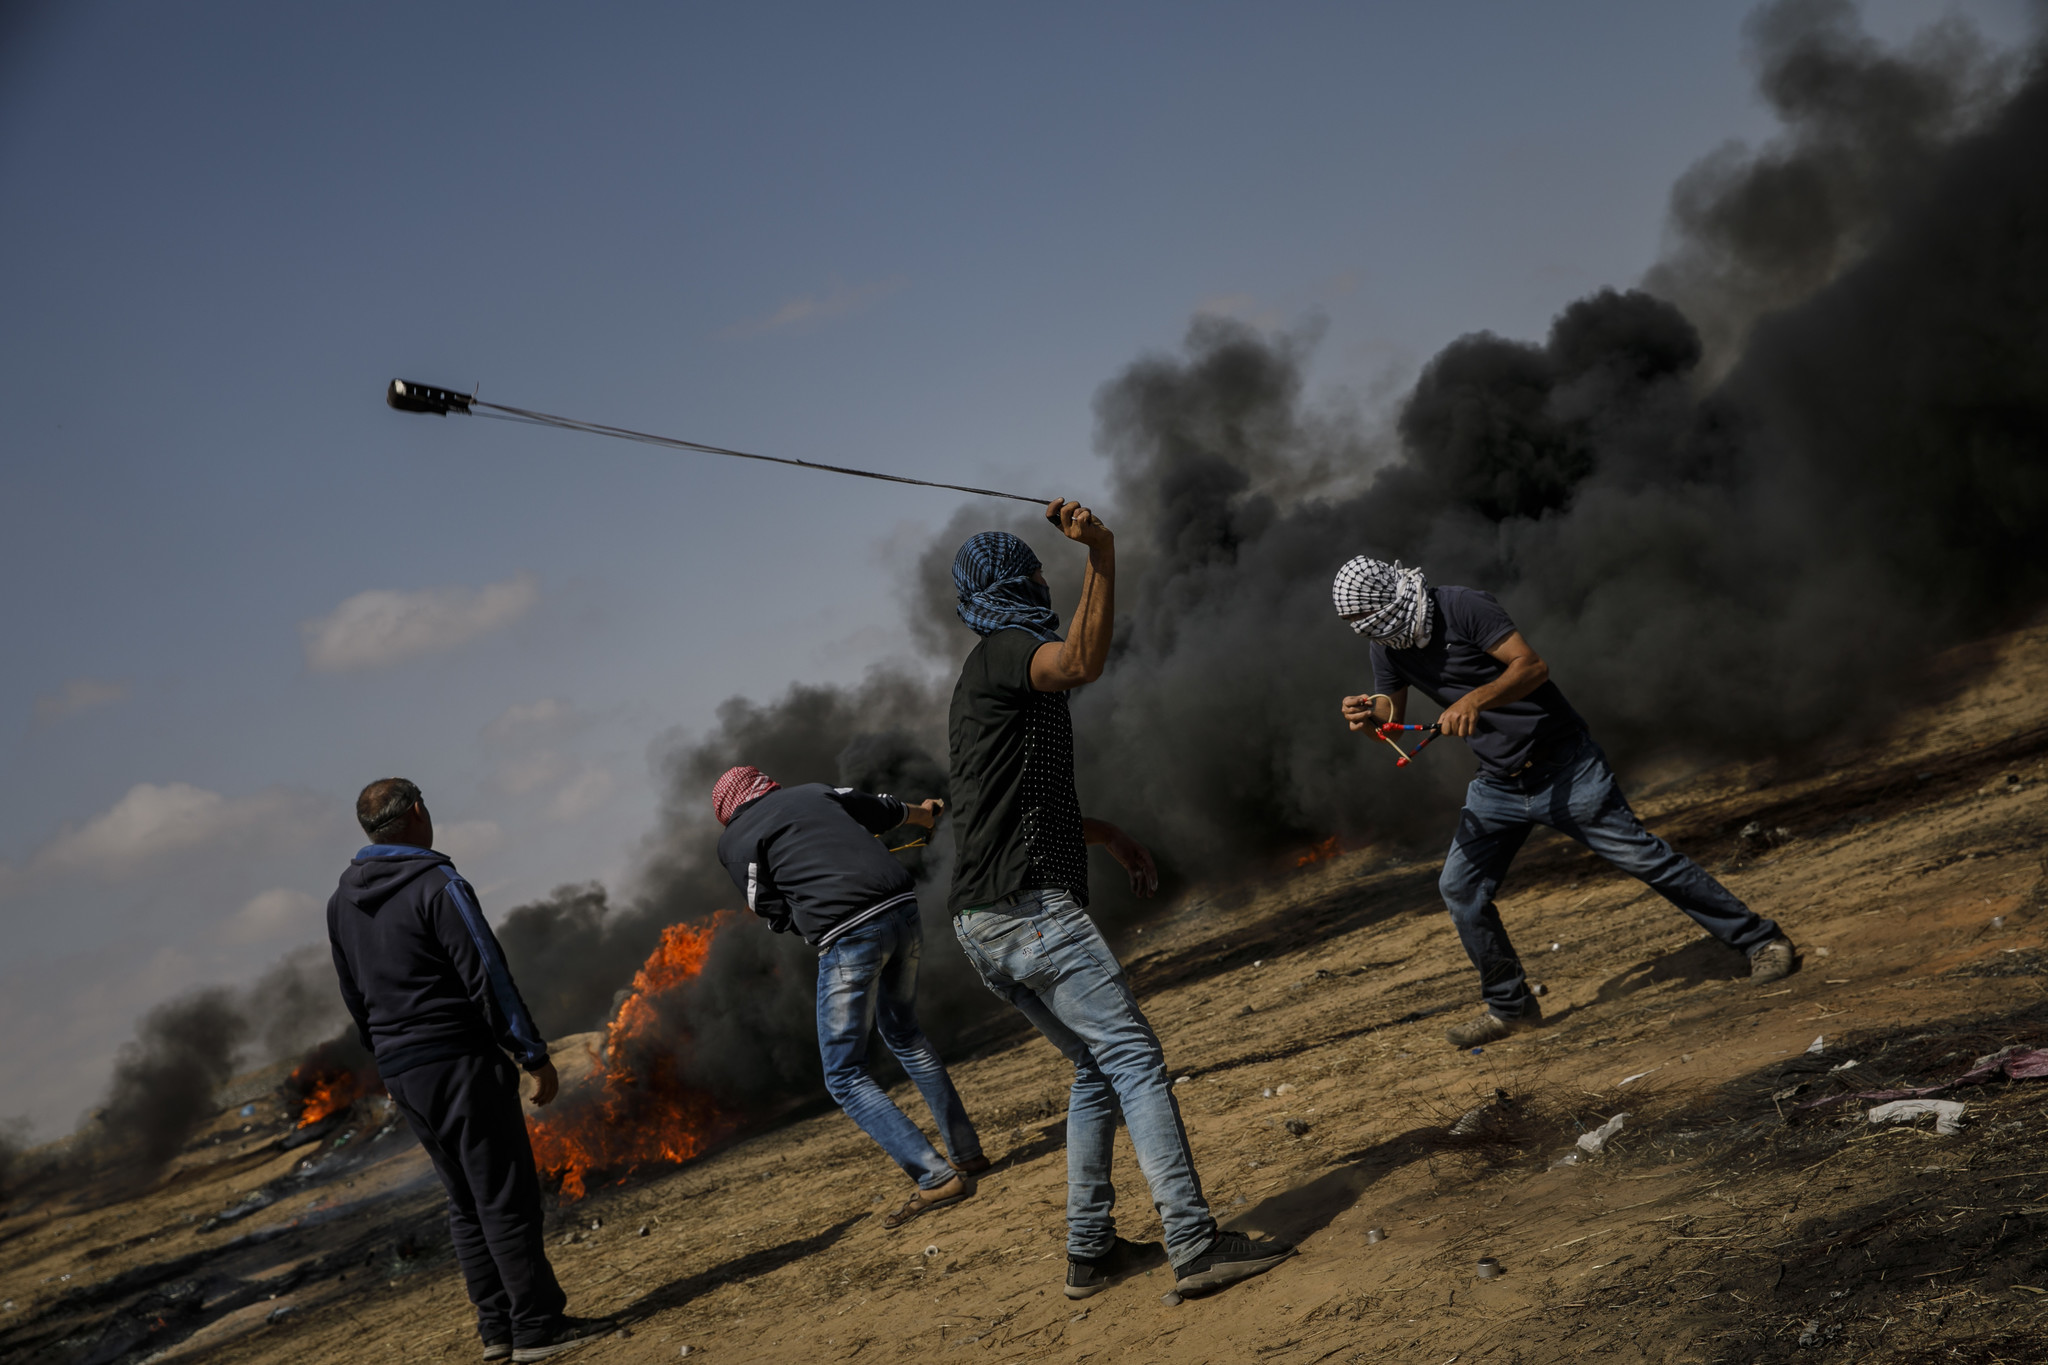 KHAN YOUNIS, GAZA STRIP — FRIDAY, MAY 11, 2018: Under the shroud of smoke from the flaming tires,